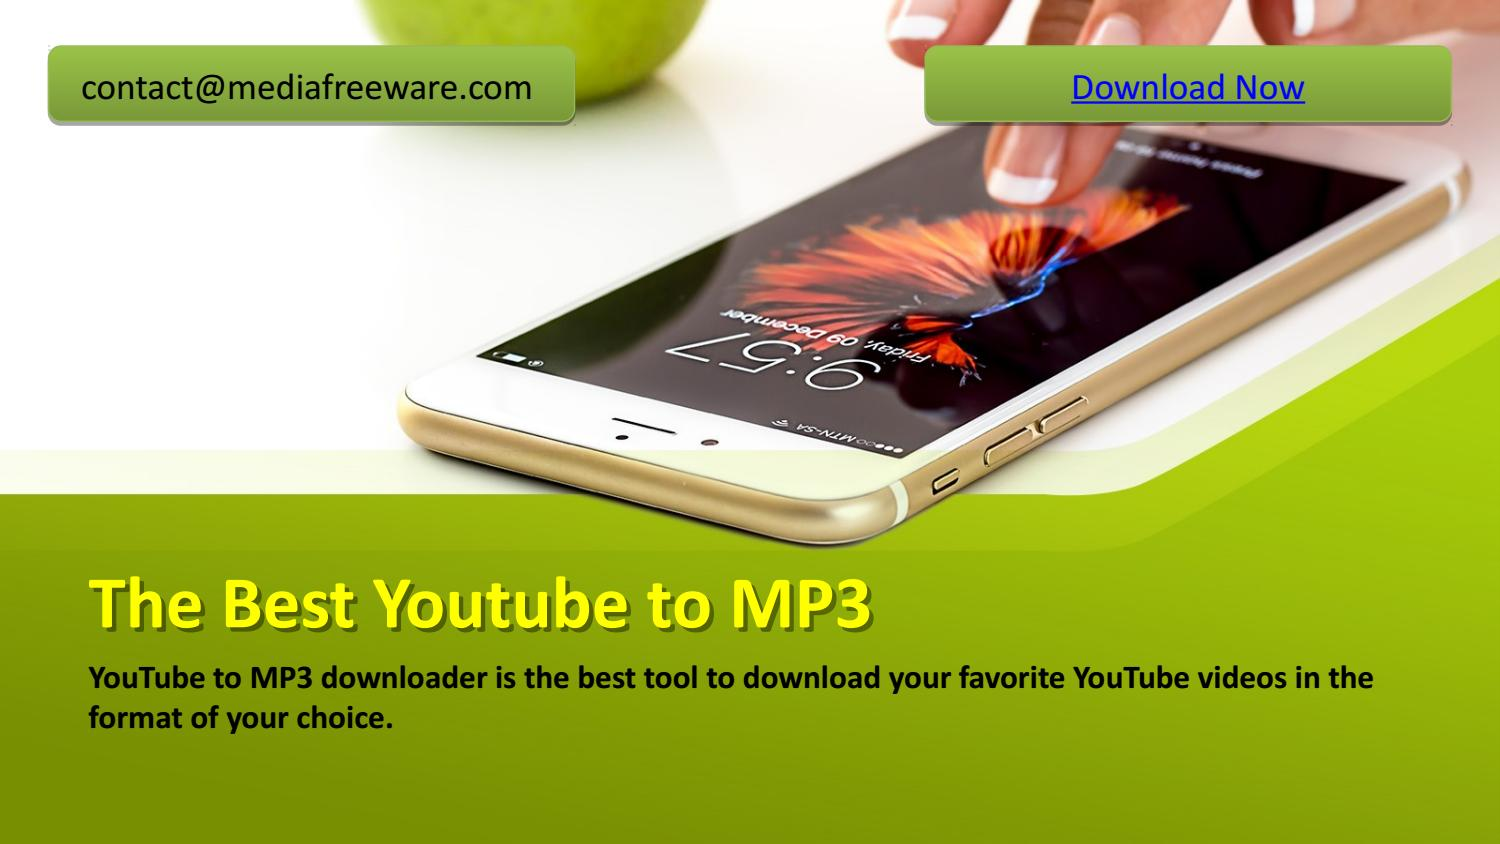 YouTube to MP3 downloader is the best tool to download your